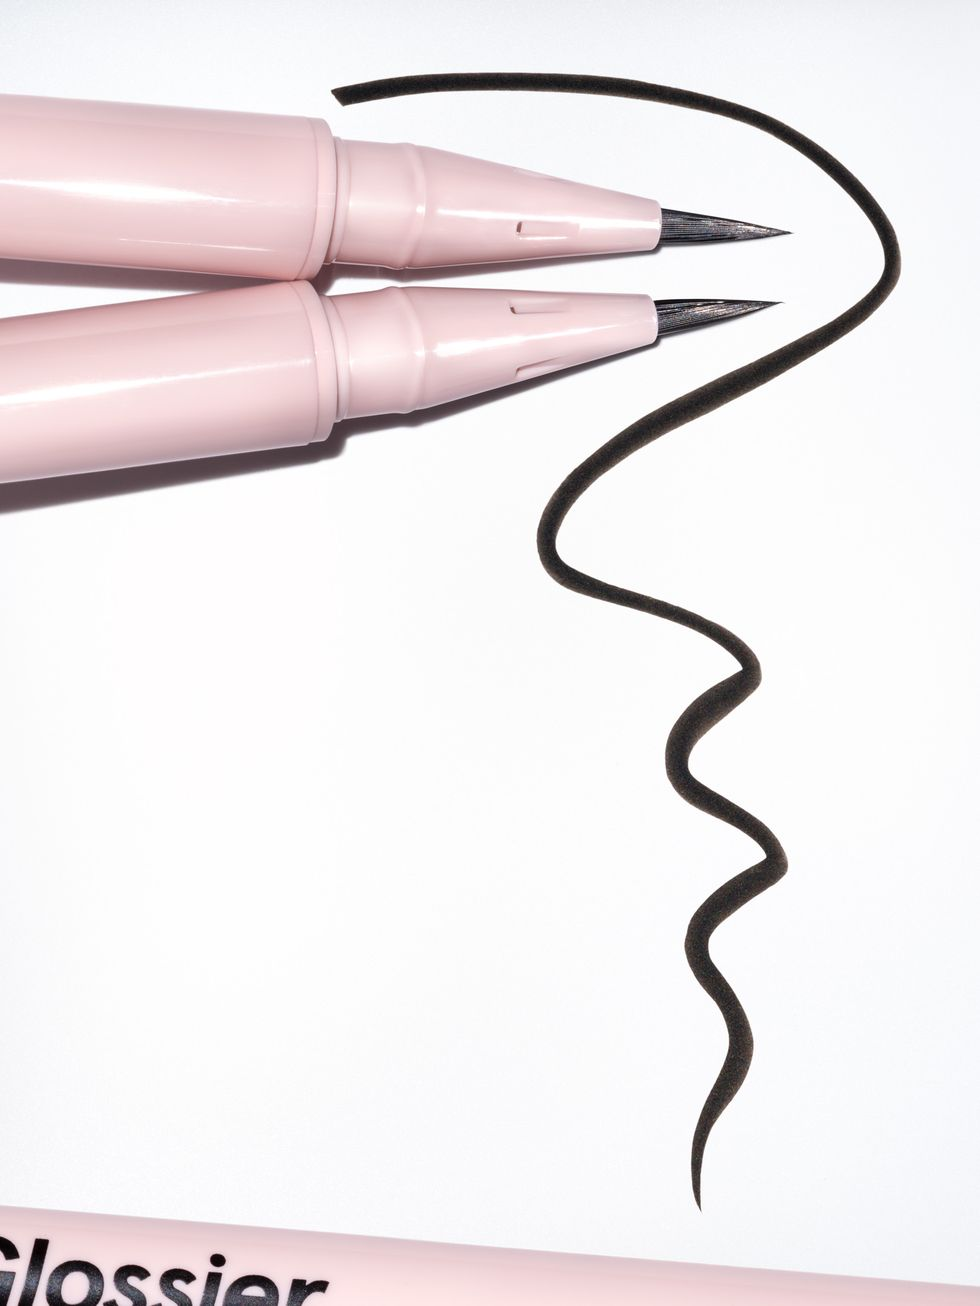 Glossier Launches Its First Ever Eyeliner Pen